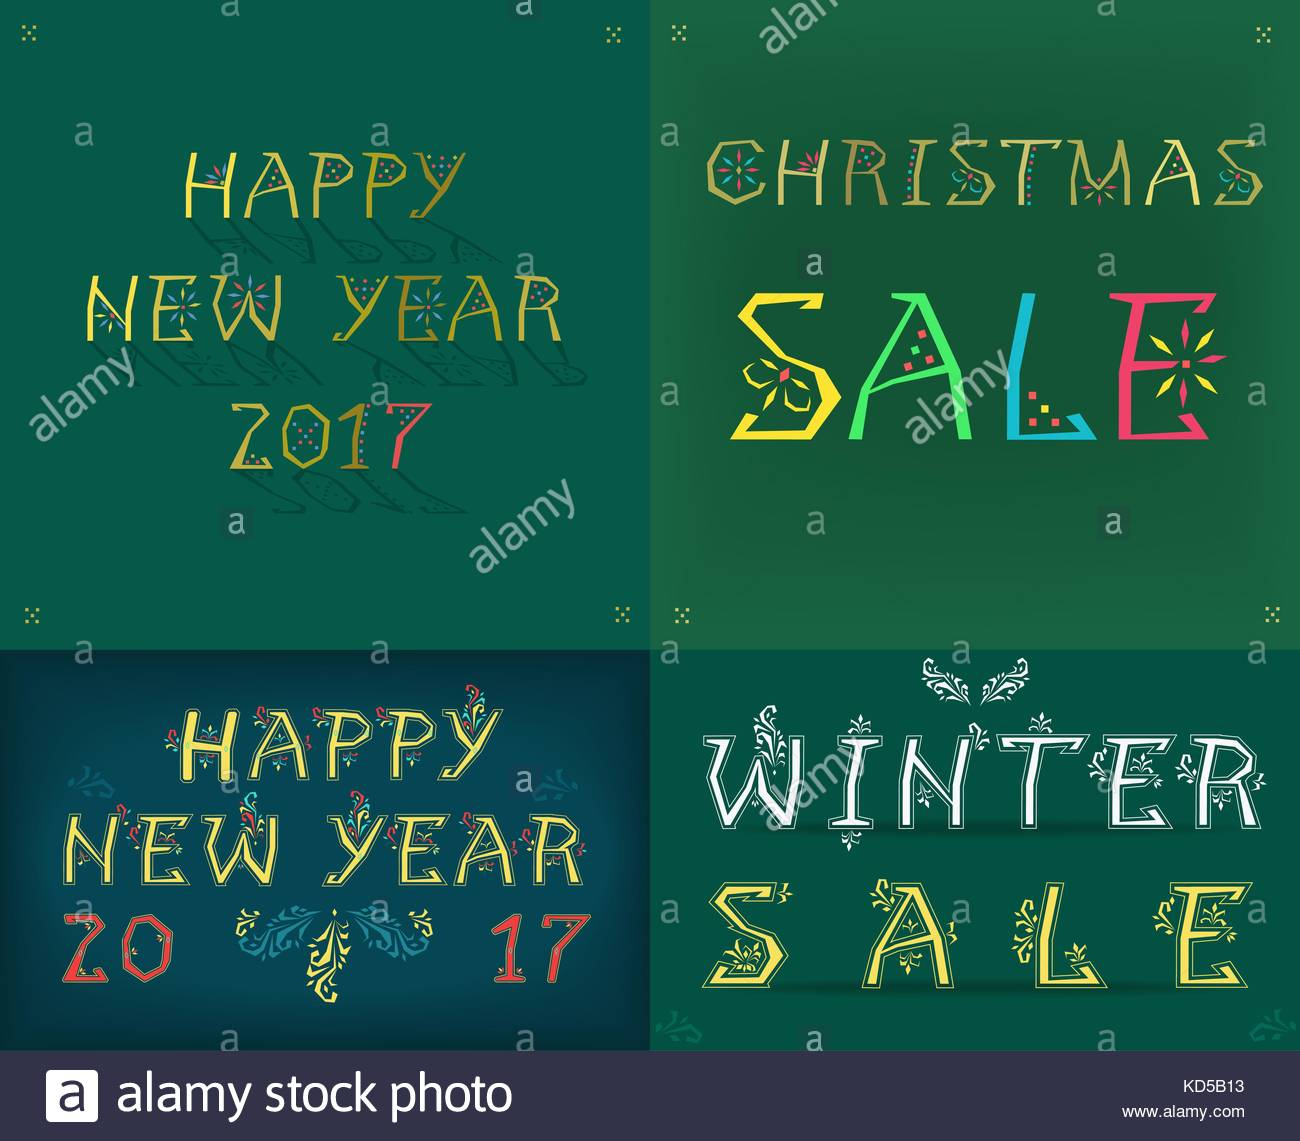 Christmas greeting vintage cards texts by artistic fonts happy christmas greeting vintage cards texts by artistic fonts happy new year 20167 christmas sale winter sale m4hsunfo